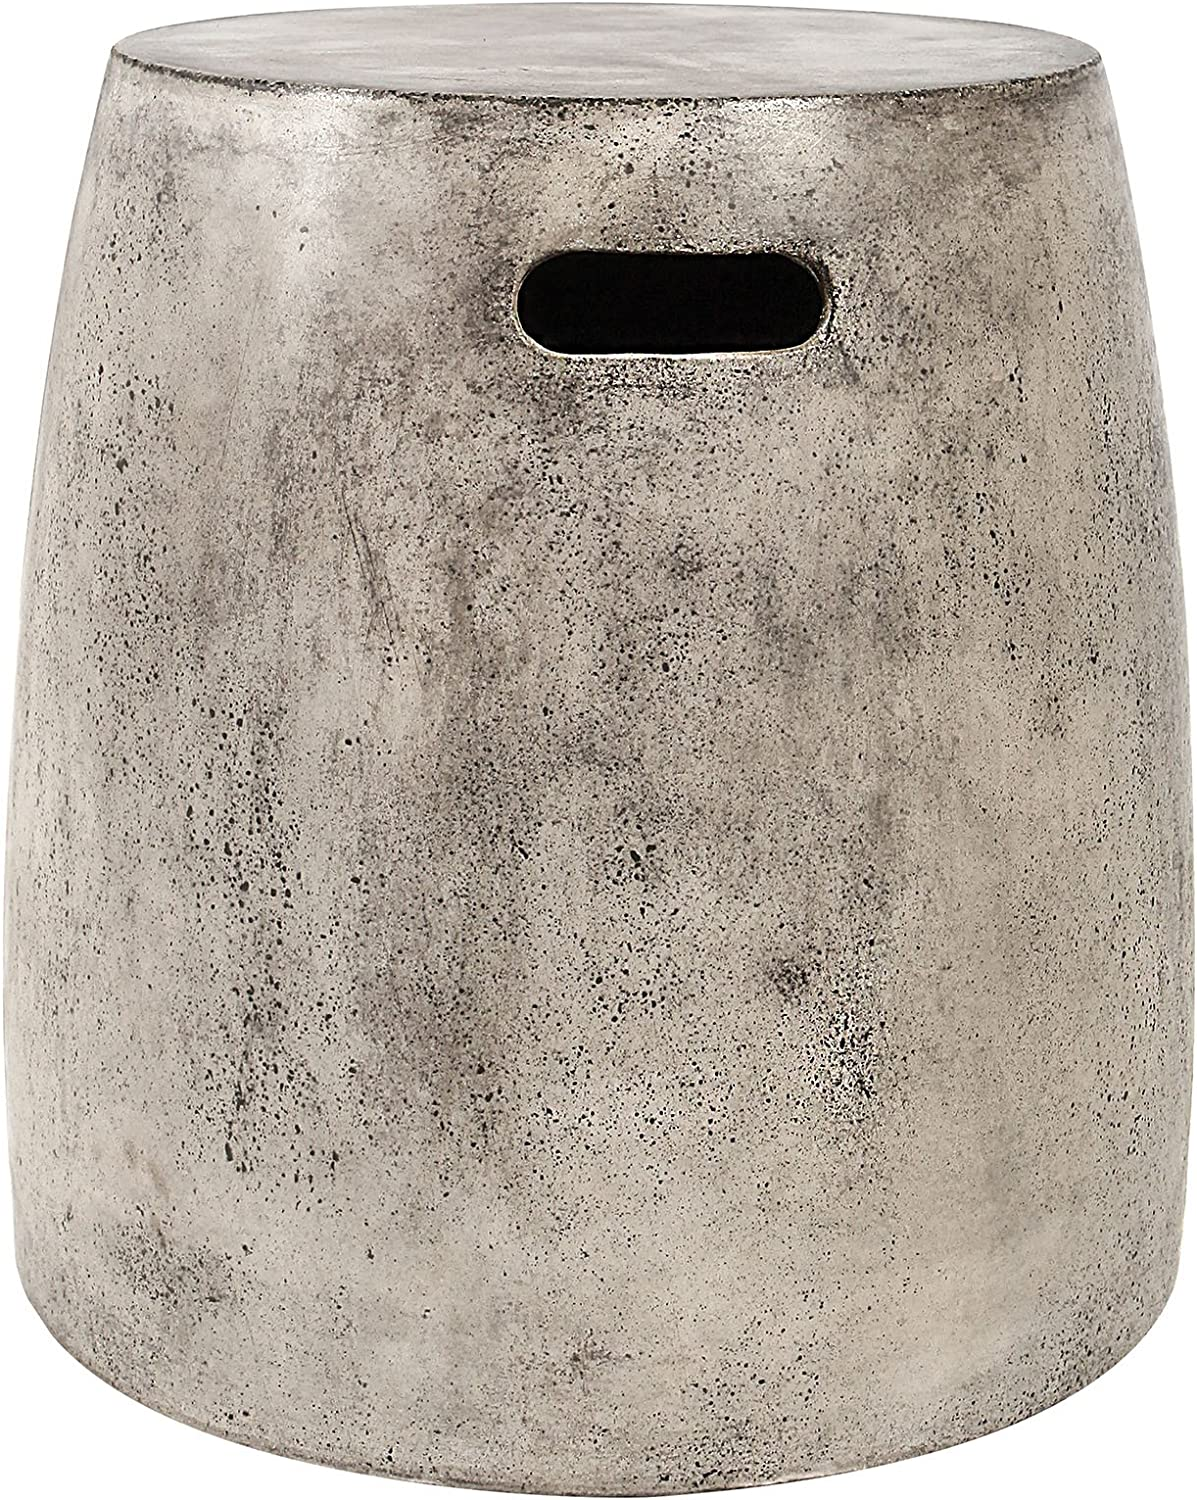 Dimond Home stool, One Size, Gray